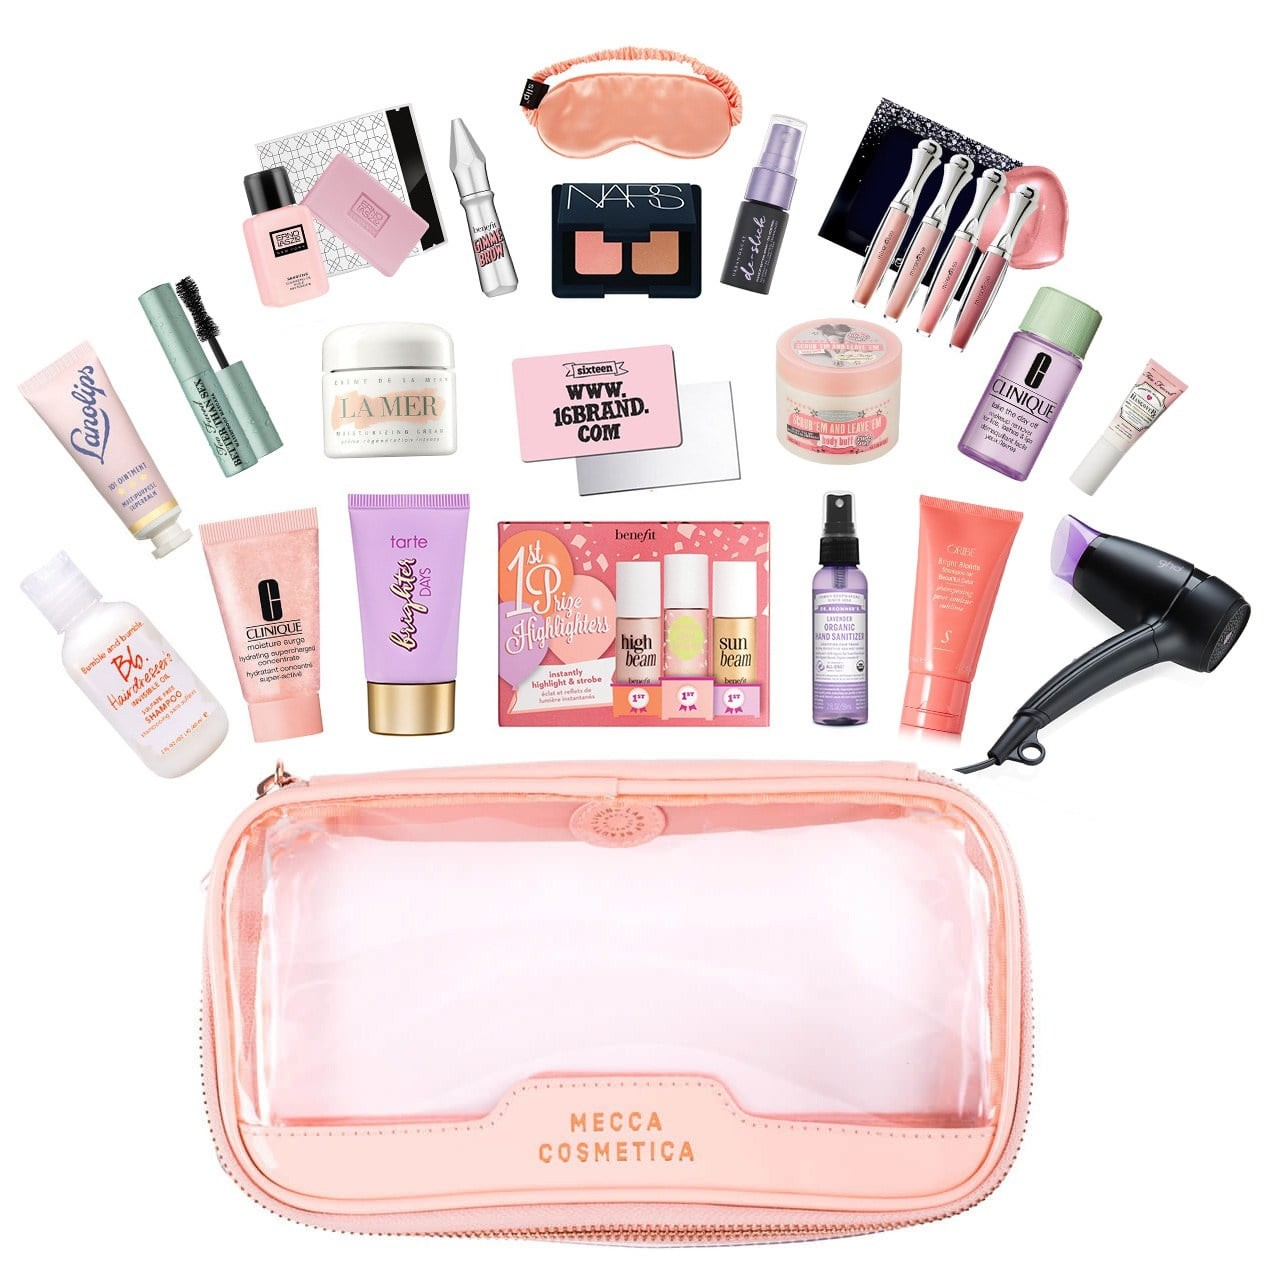 a pink clear plastic makeup bag with an array of miniature products.